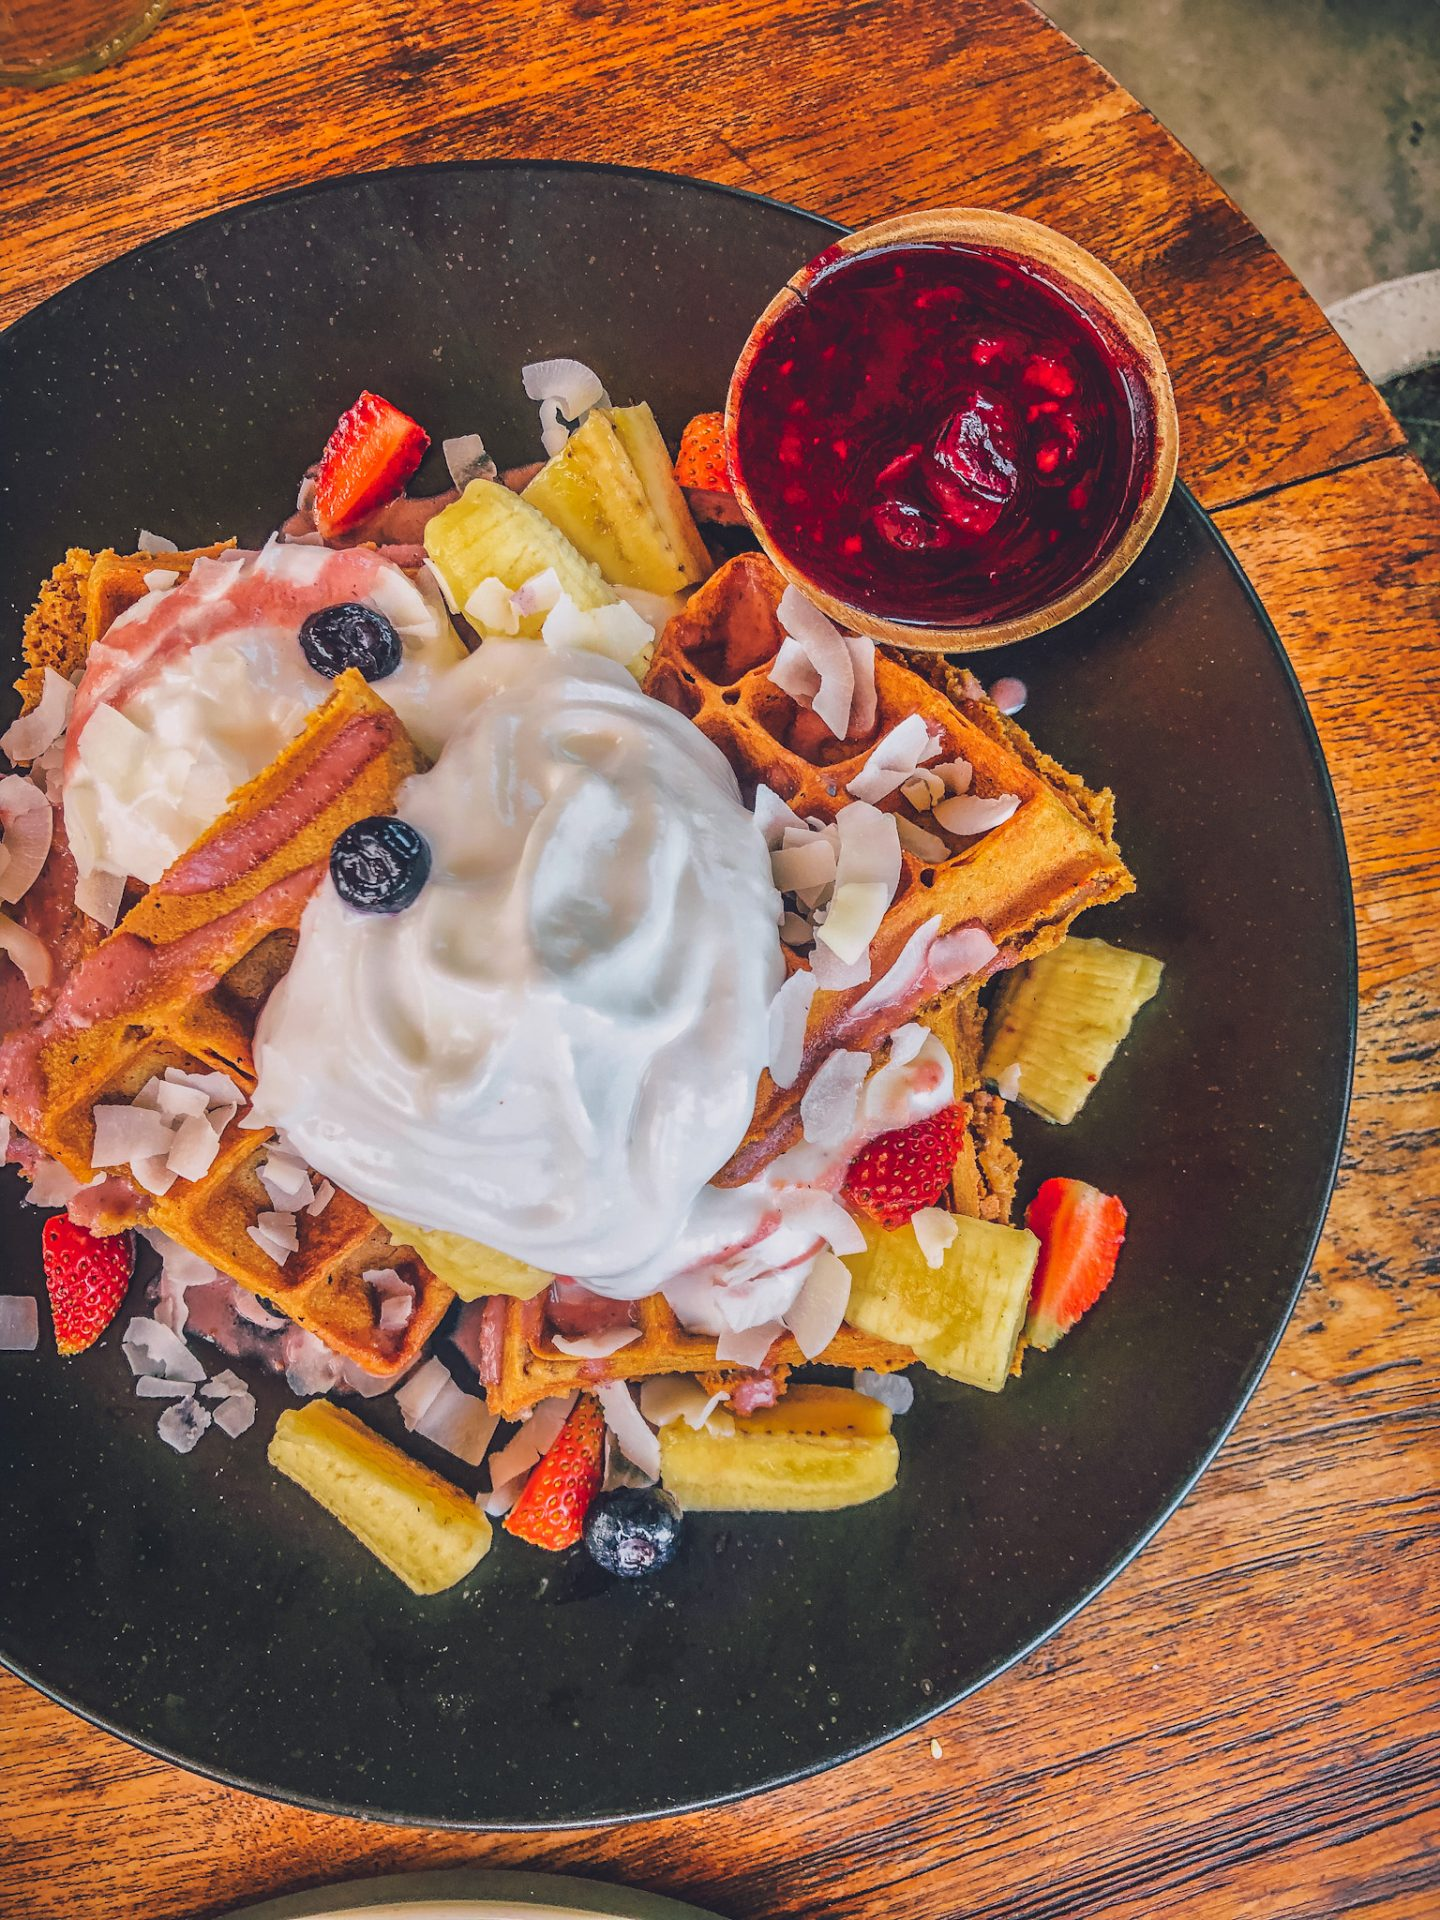 Healthy fgood guide Bali - vegan waffles